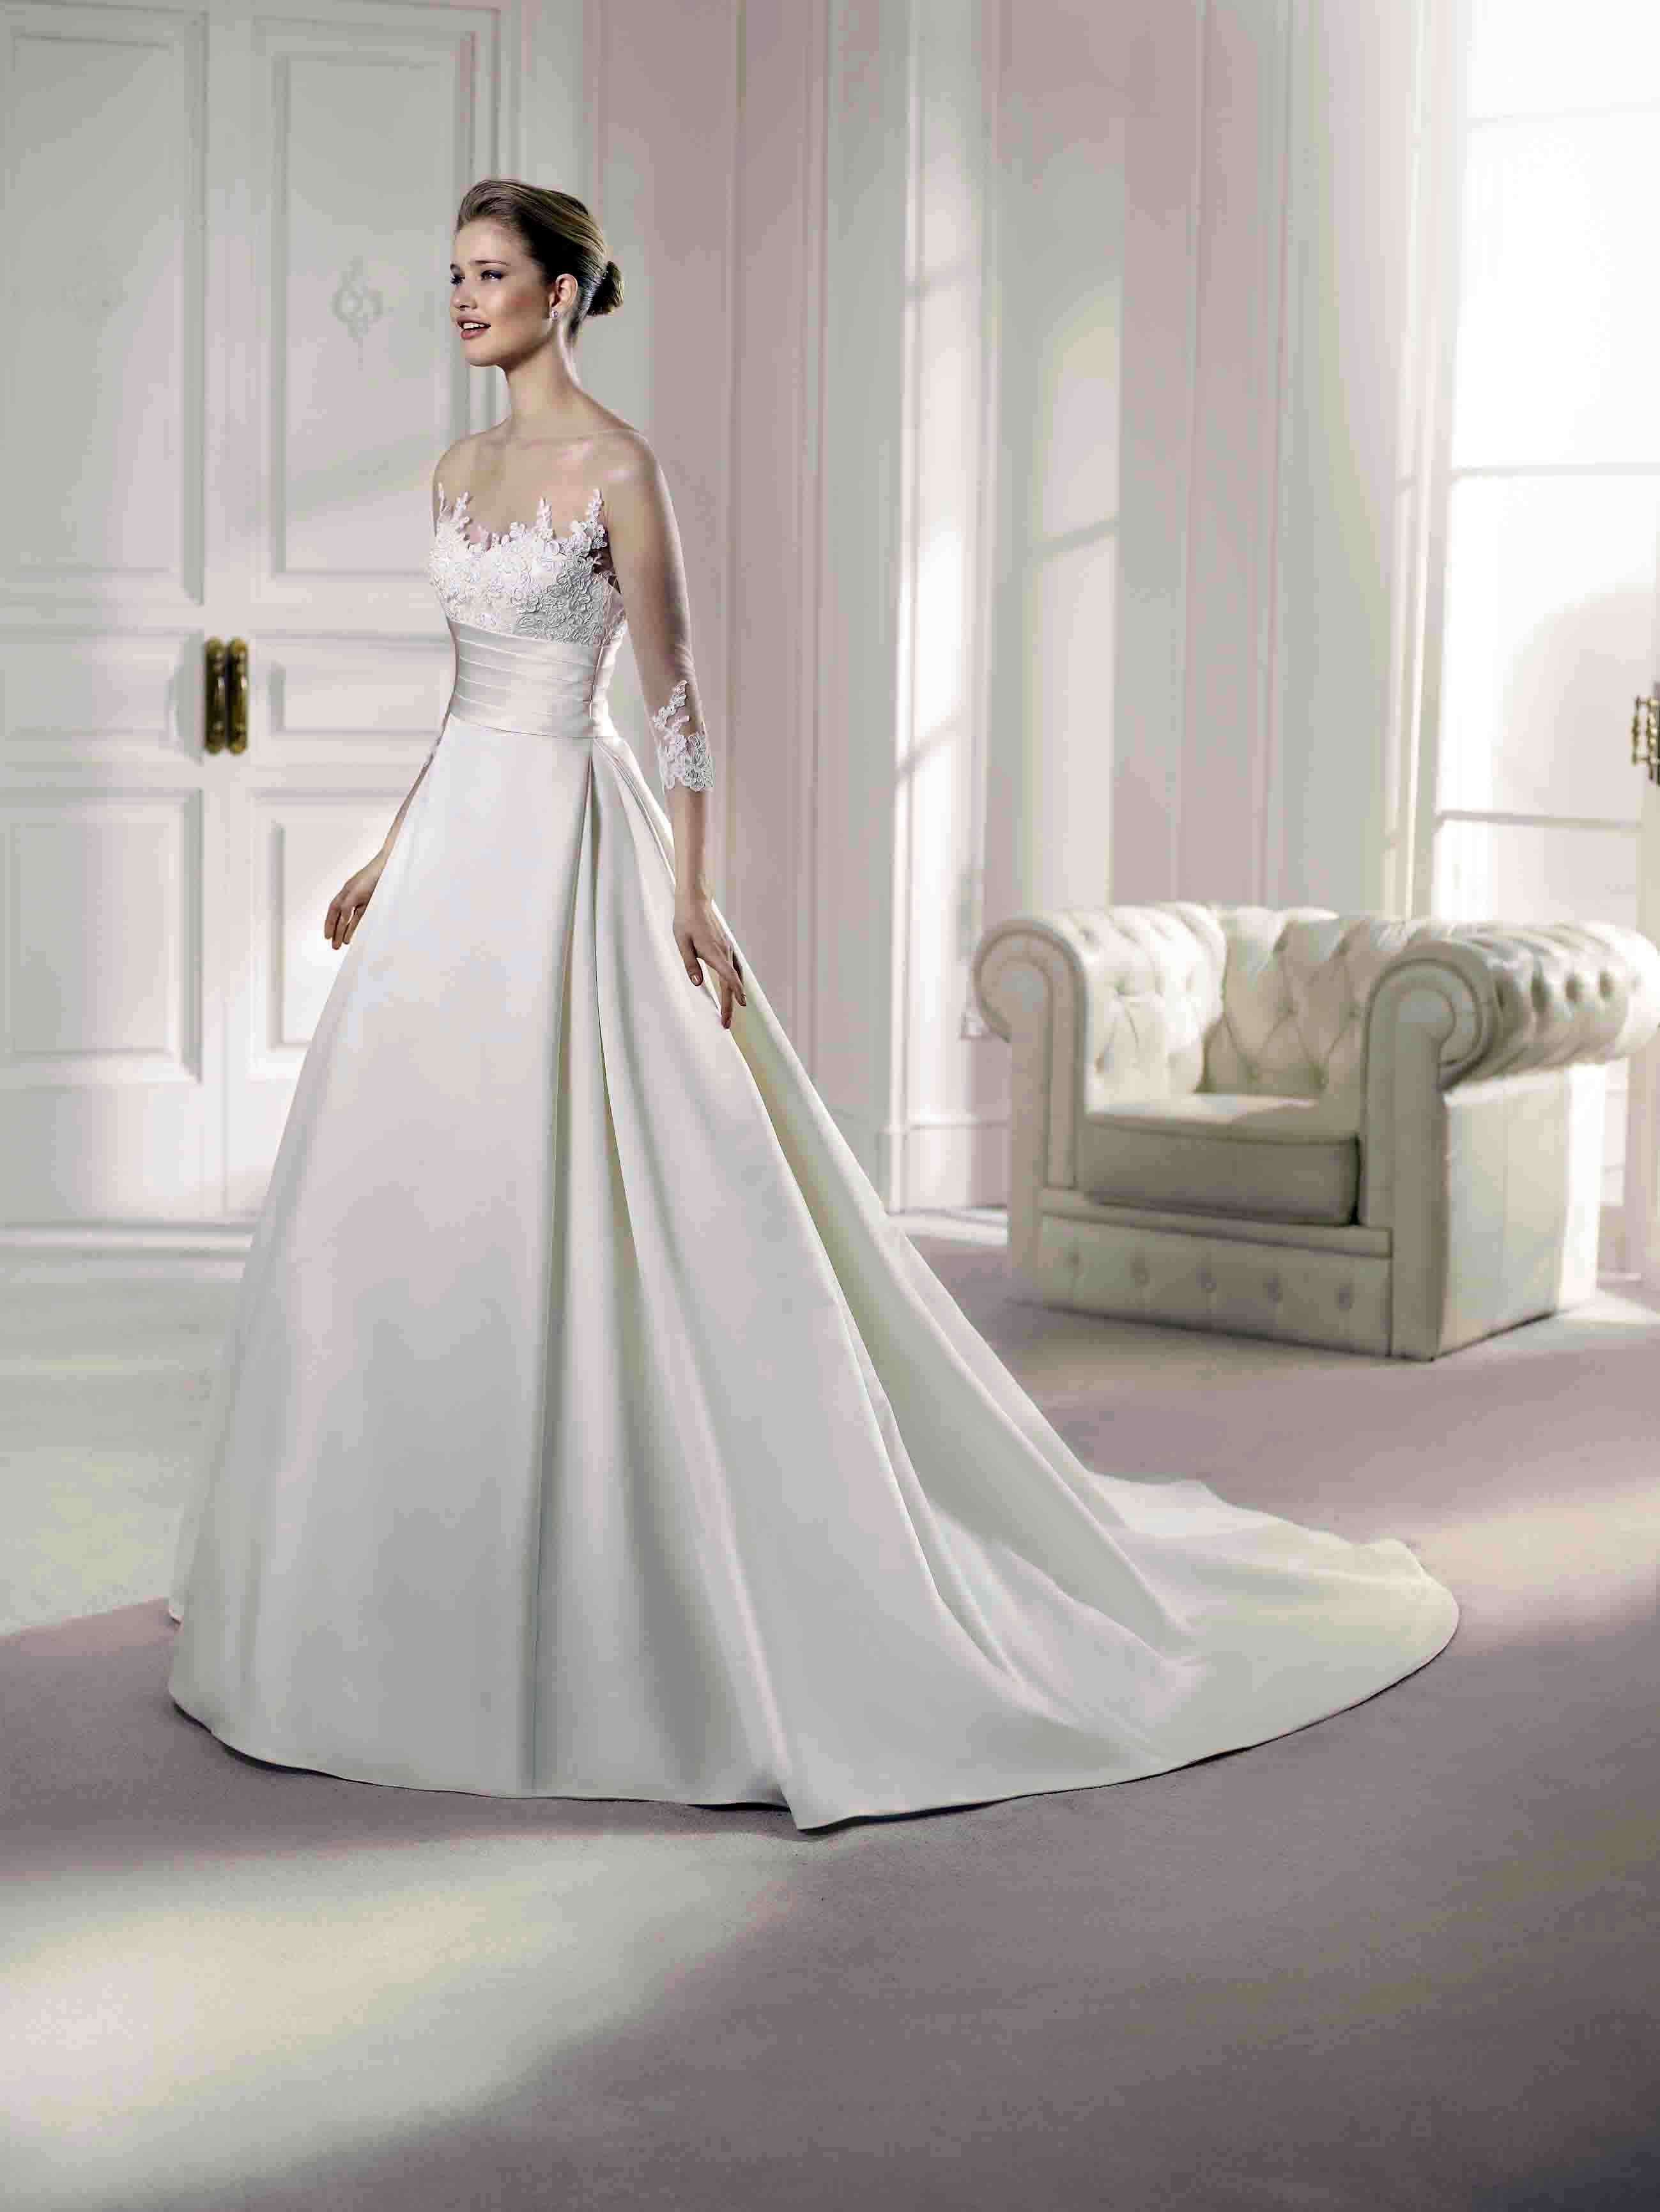 Aspirations bridal dublin wedding dresses evening wear aspirations bridal dublin wedding dresses evening wear specialists in dublin ireland ombrellifo Image collections